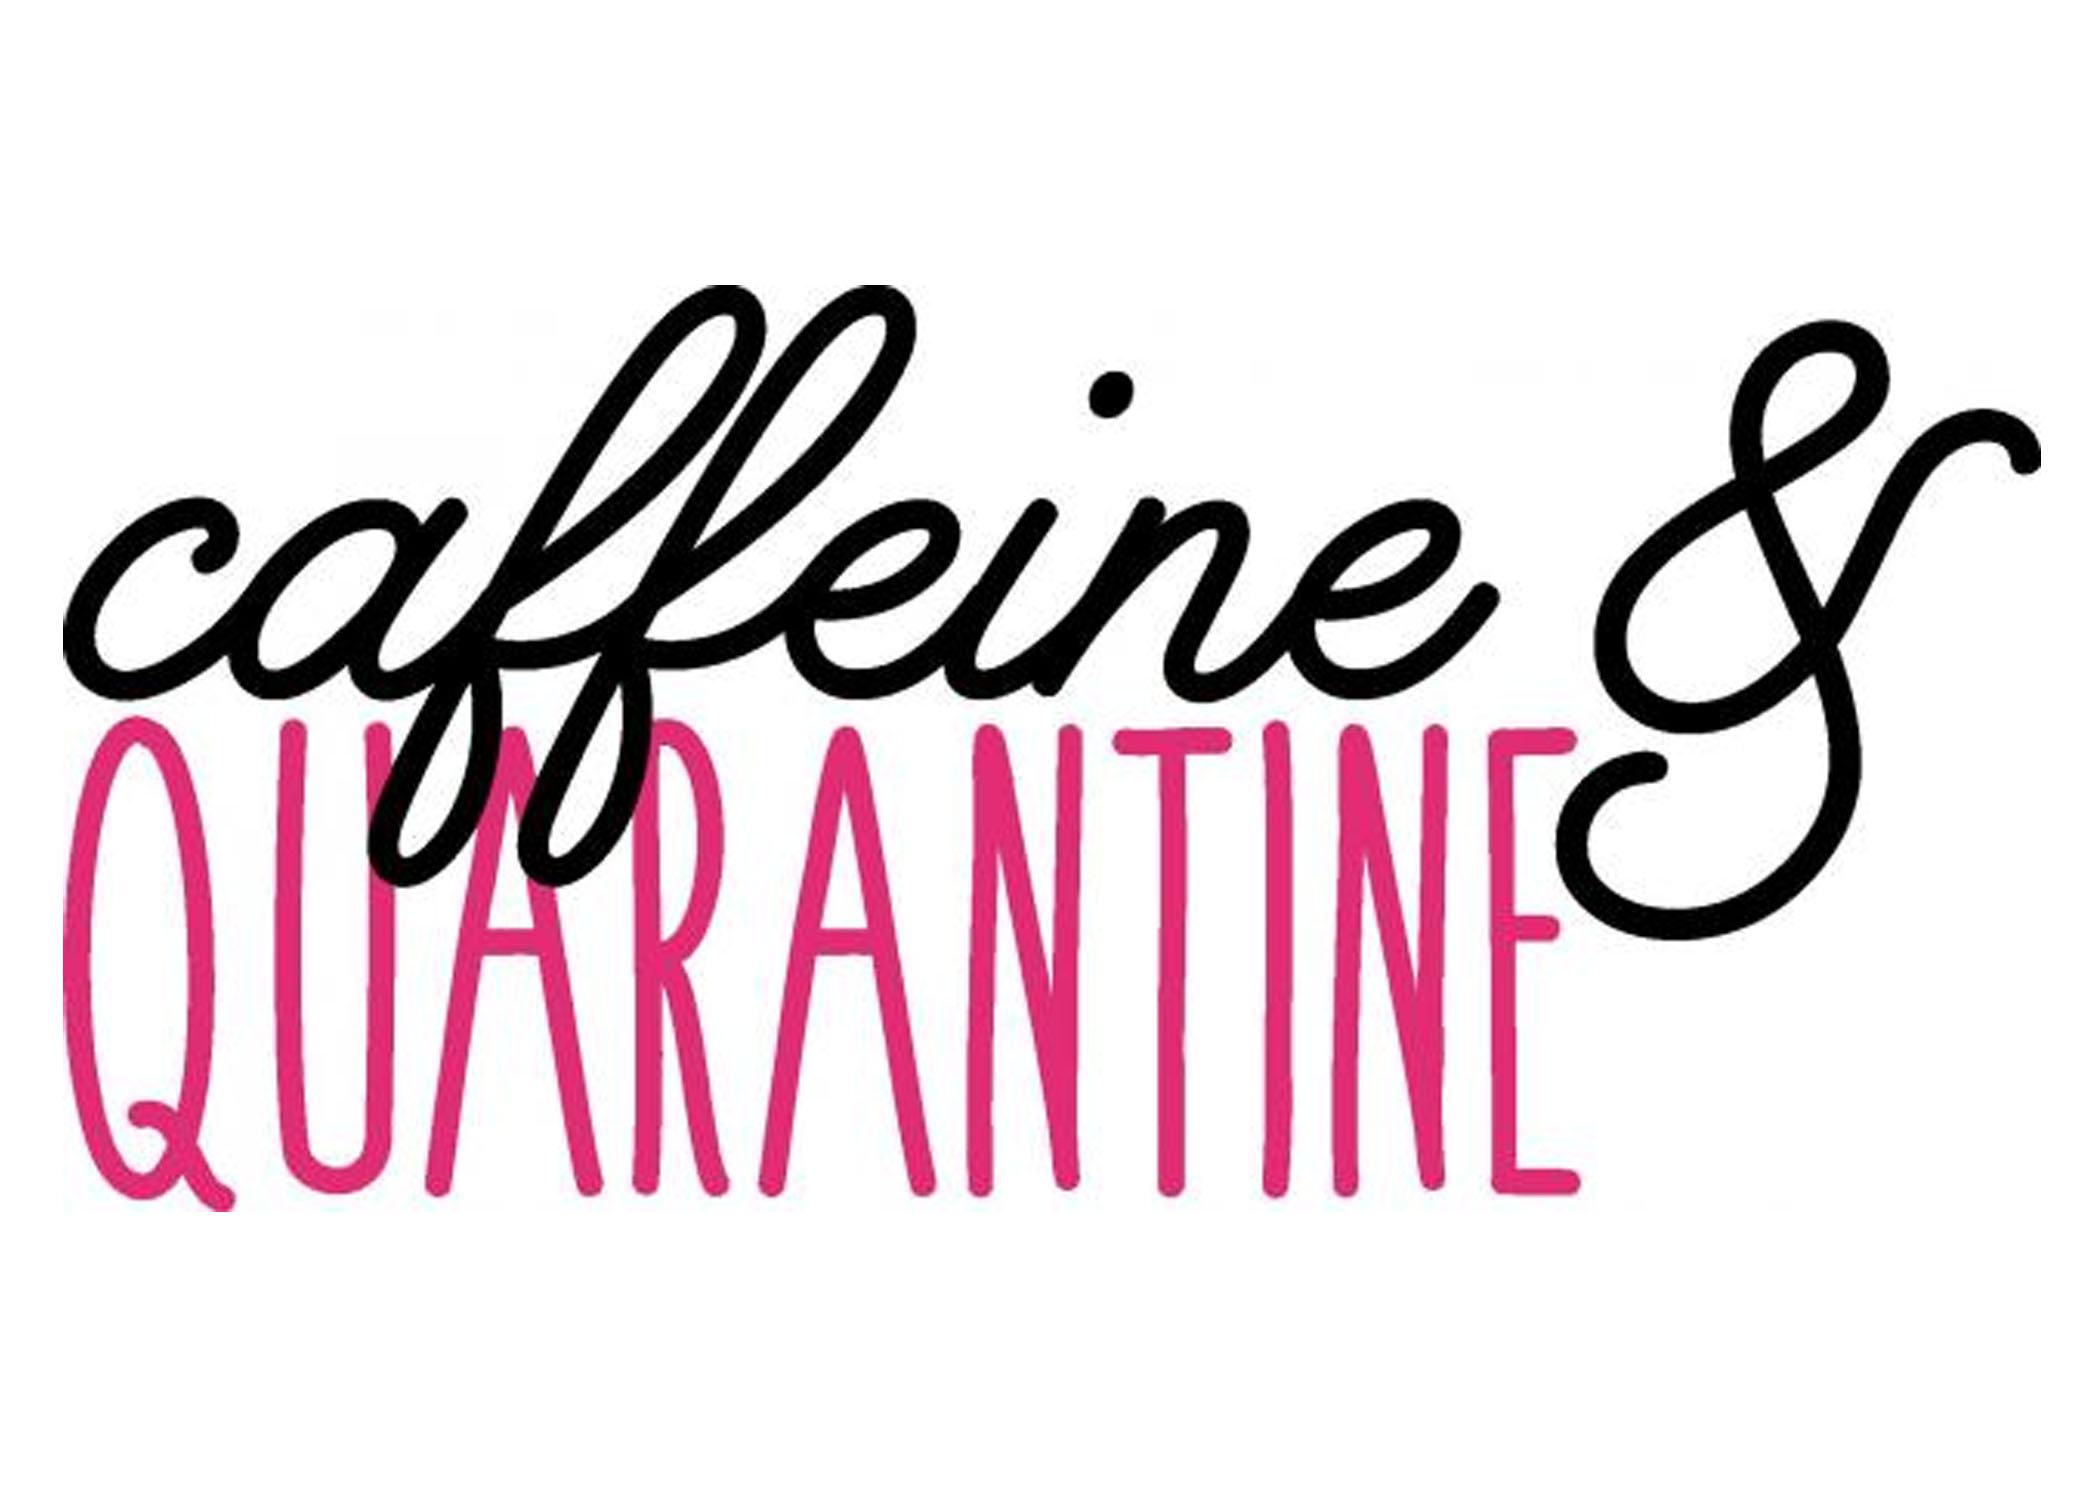 Caffeine and Quarantine